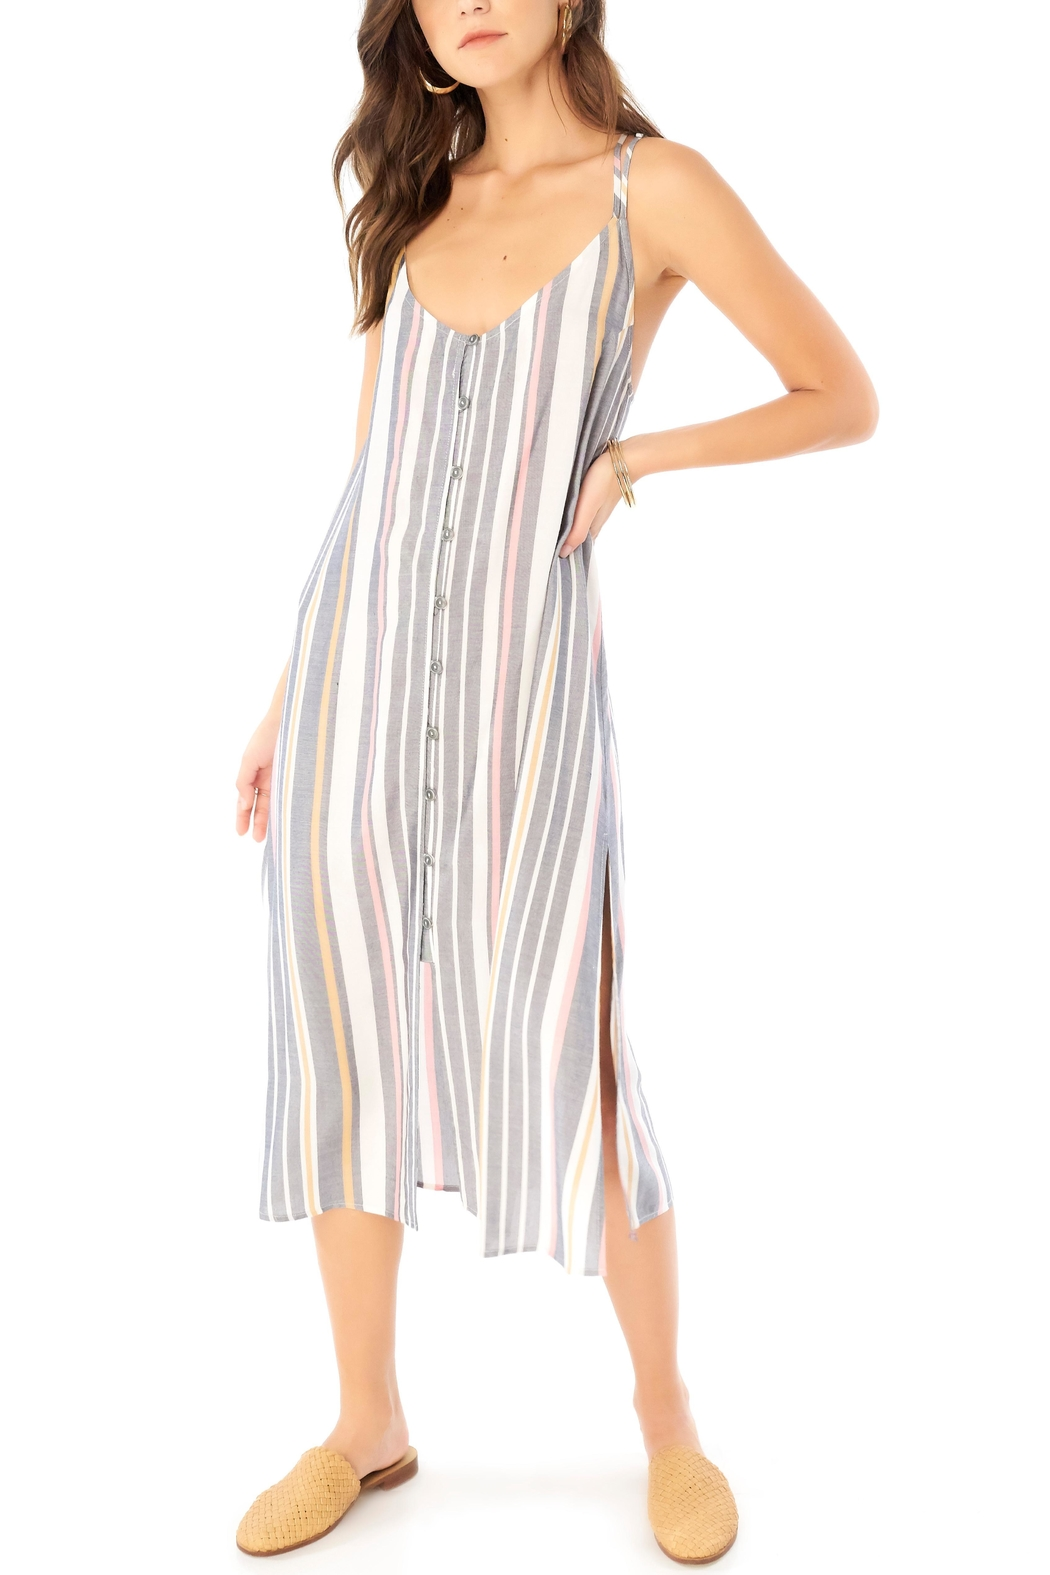 Saltwater Luxe Striped Midi Dress - Main Image